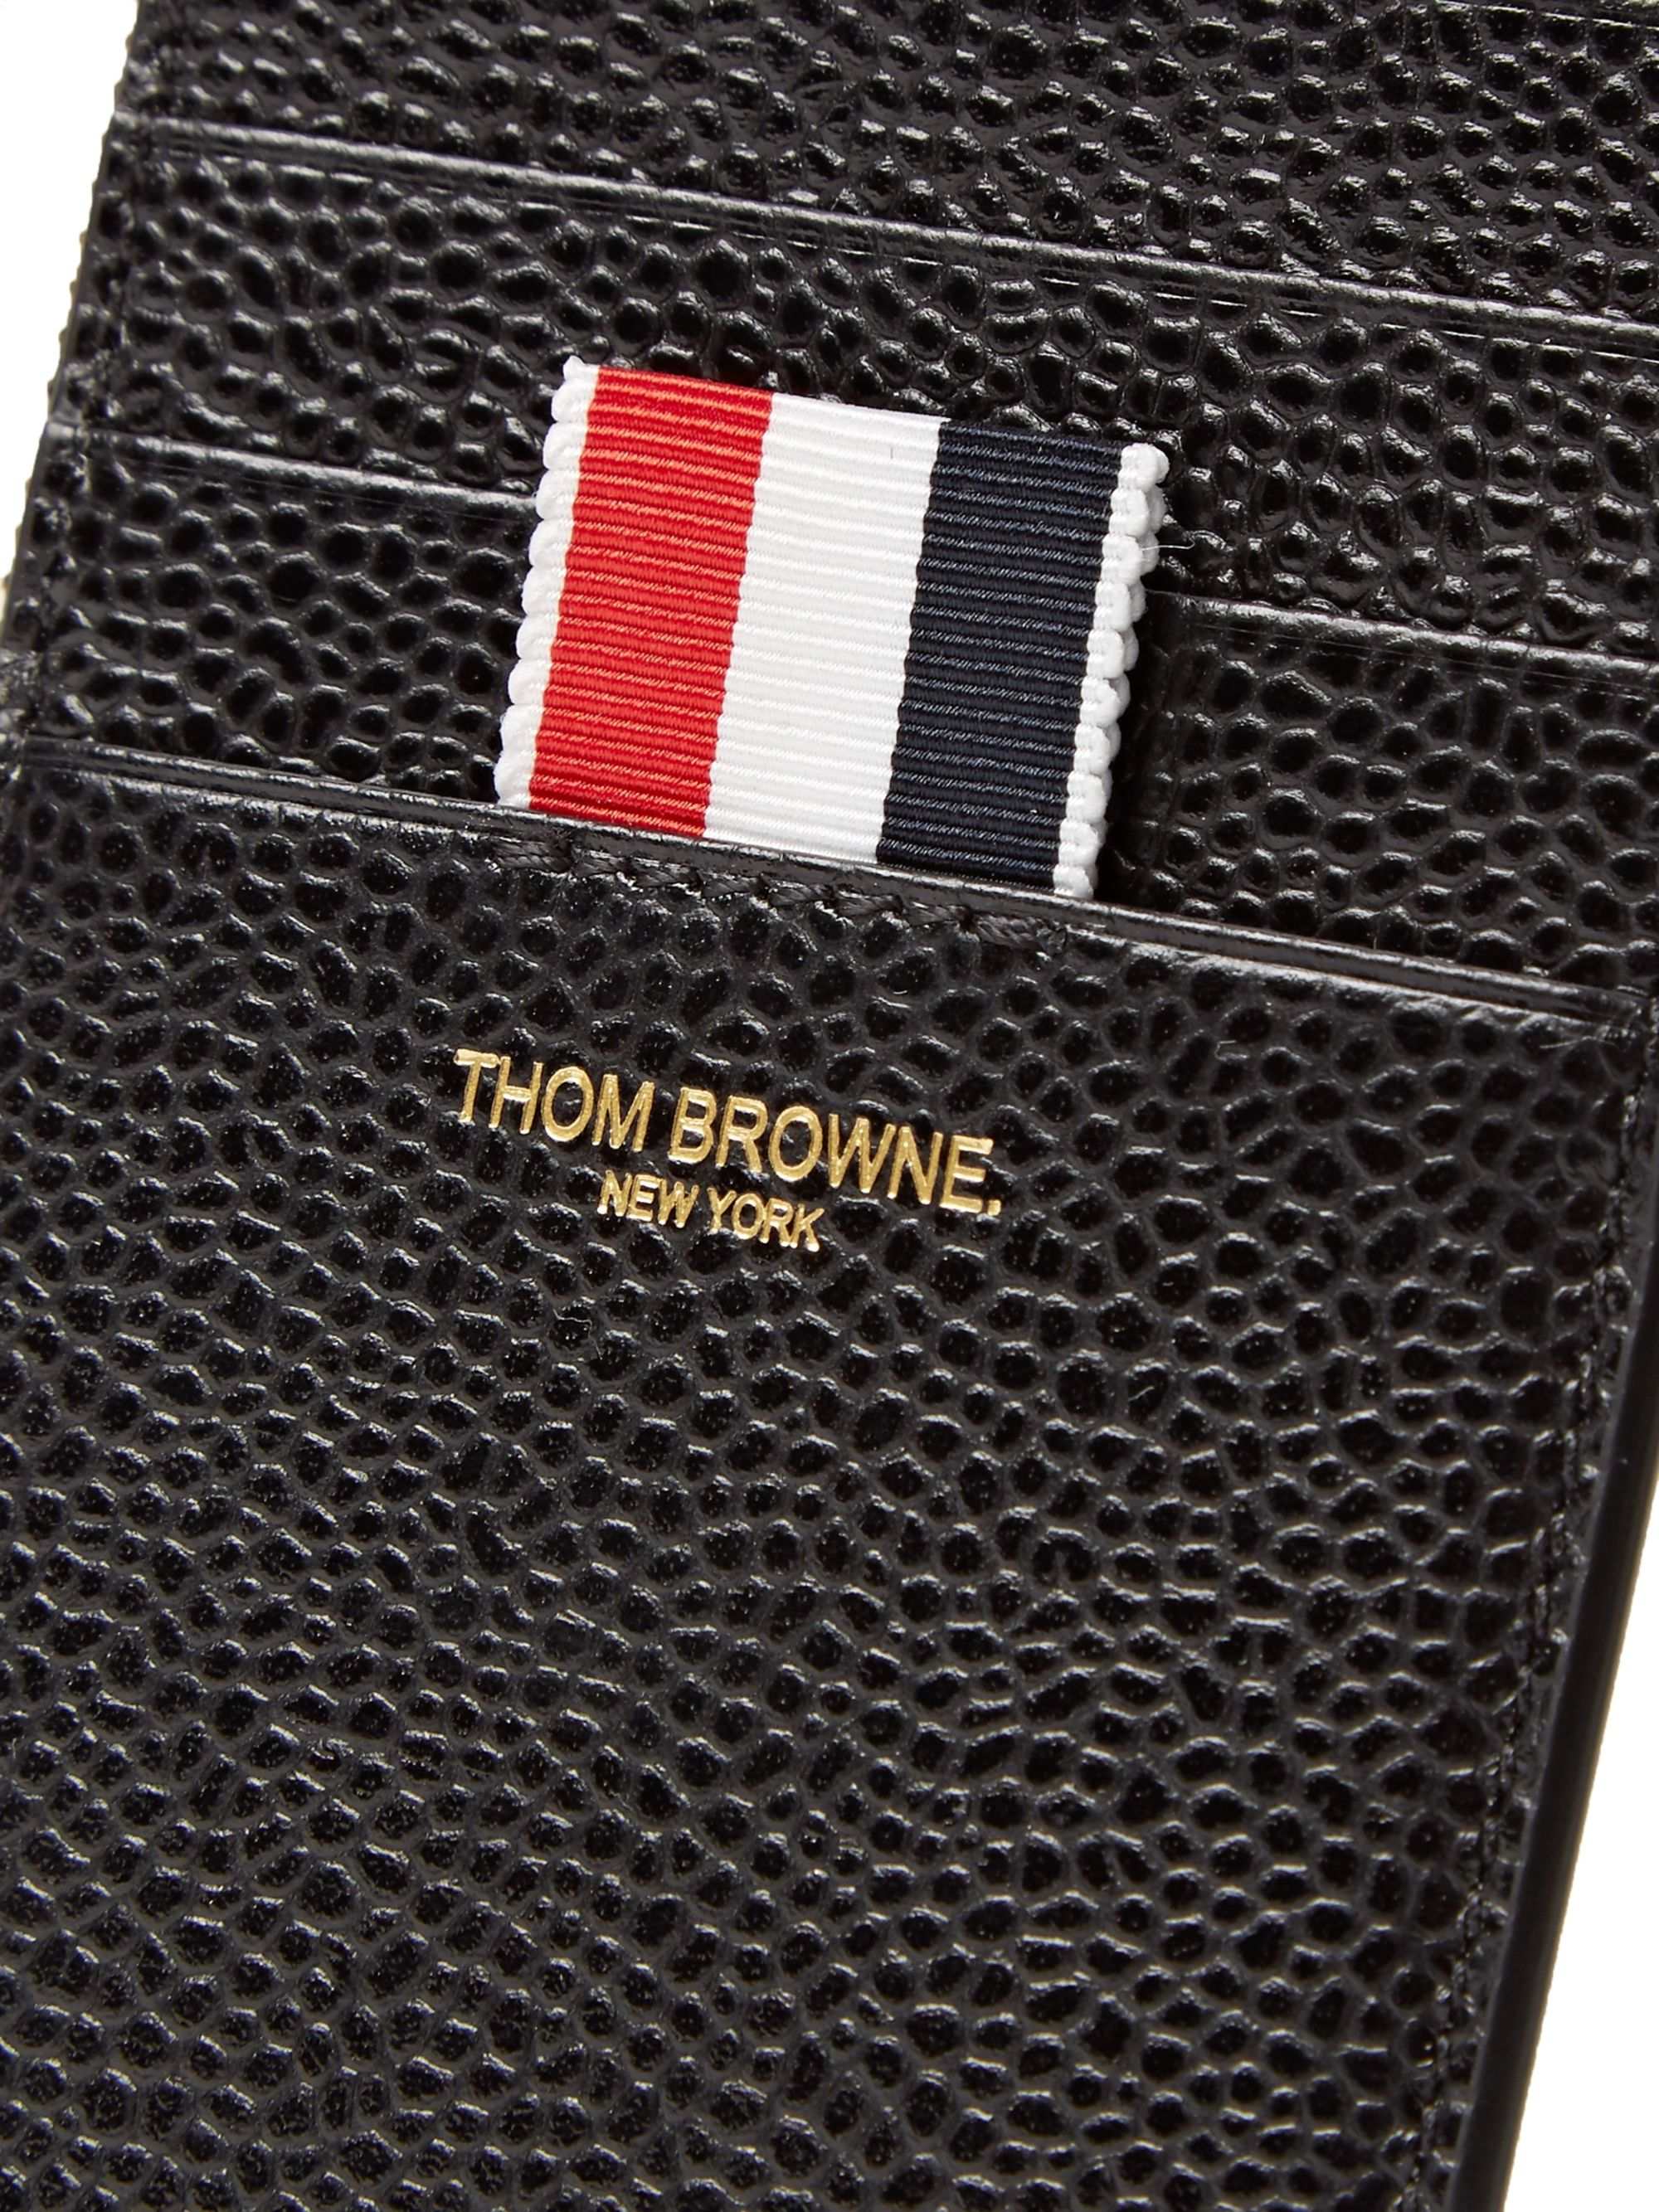 Thom Browne Pebble-Grain Leather Zip-Around Cardholder